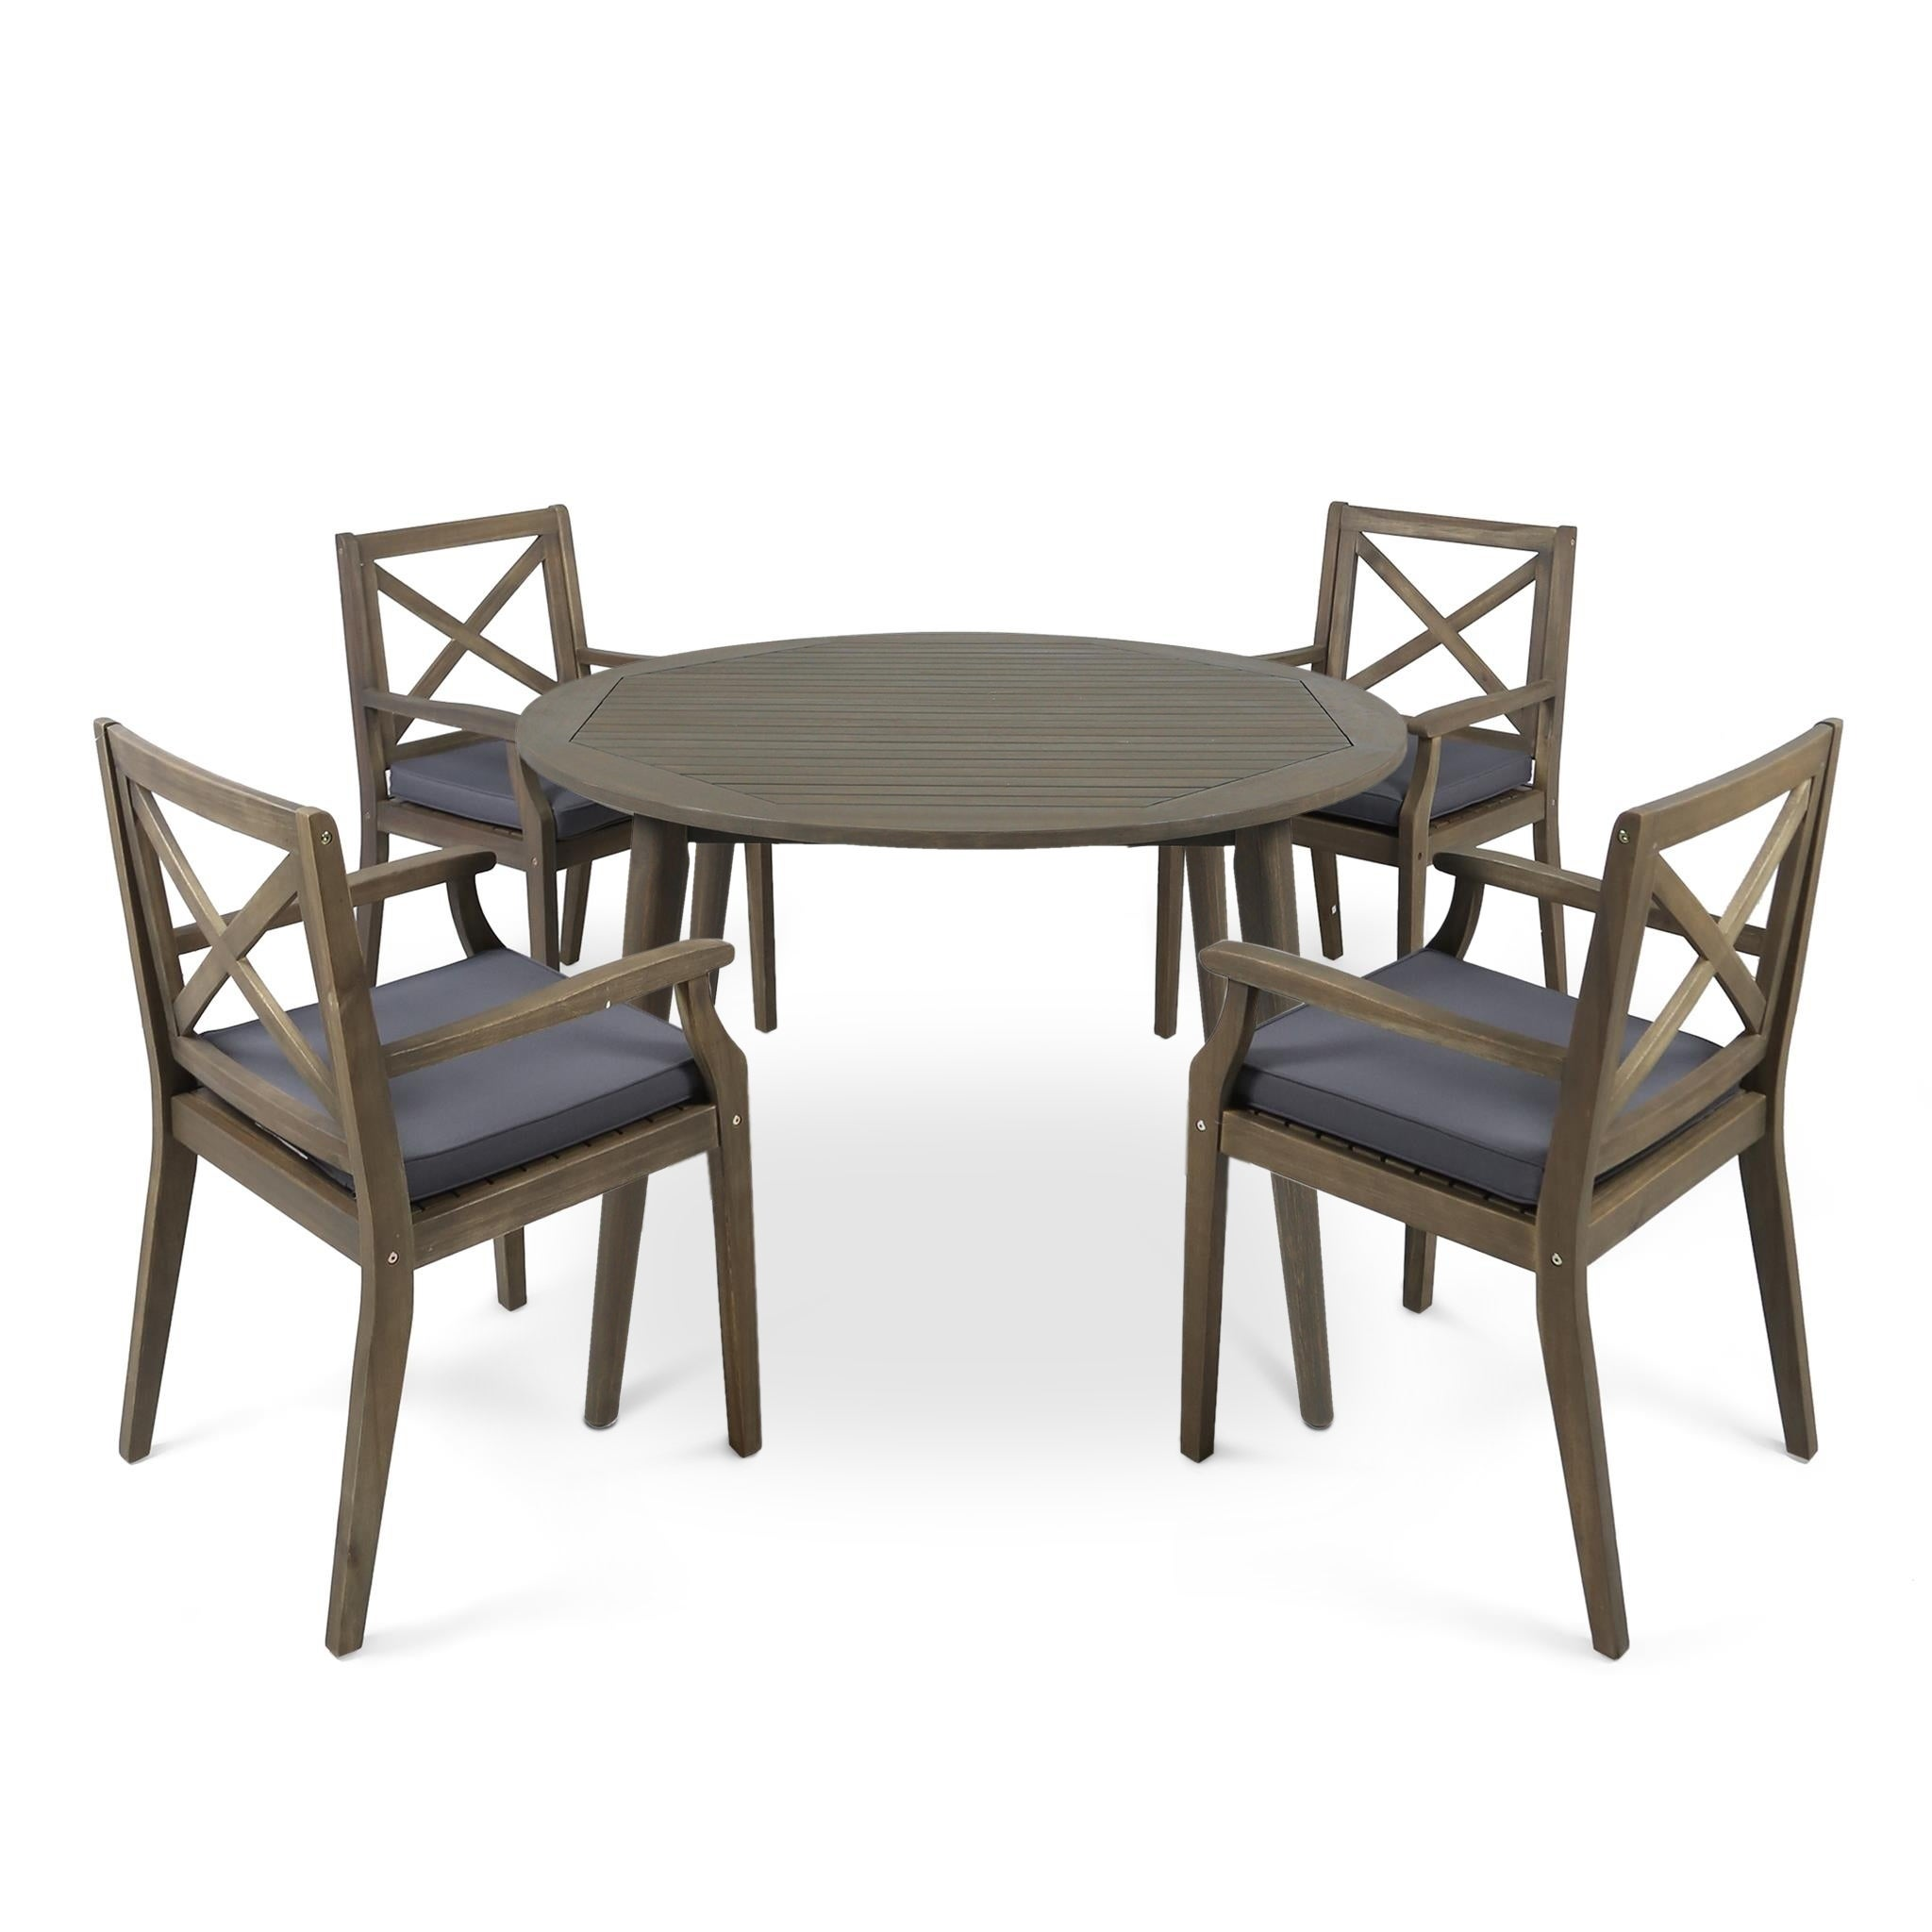 Shop Pines Outdoor 5 Piece Acacia Wood Dining Set With Cushions By  Christopher Knight Home   Free Shipping Today   Overstock.com   22341372